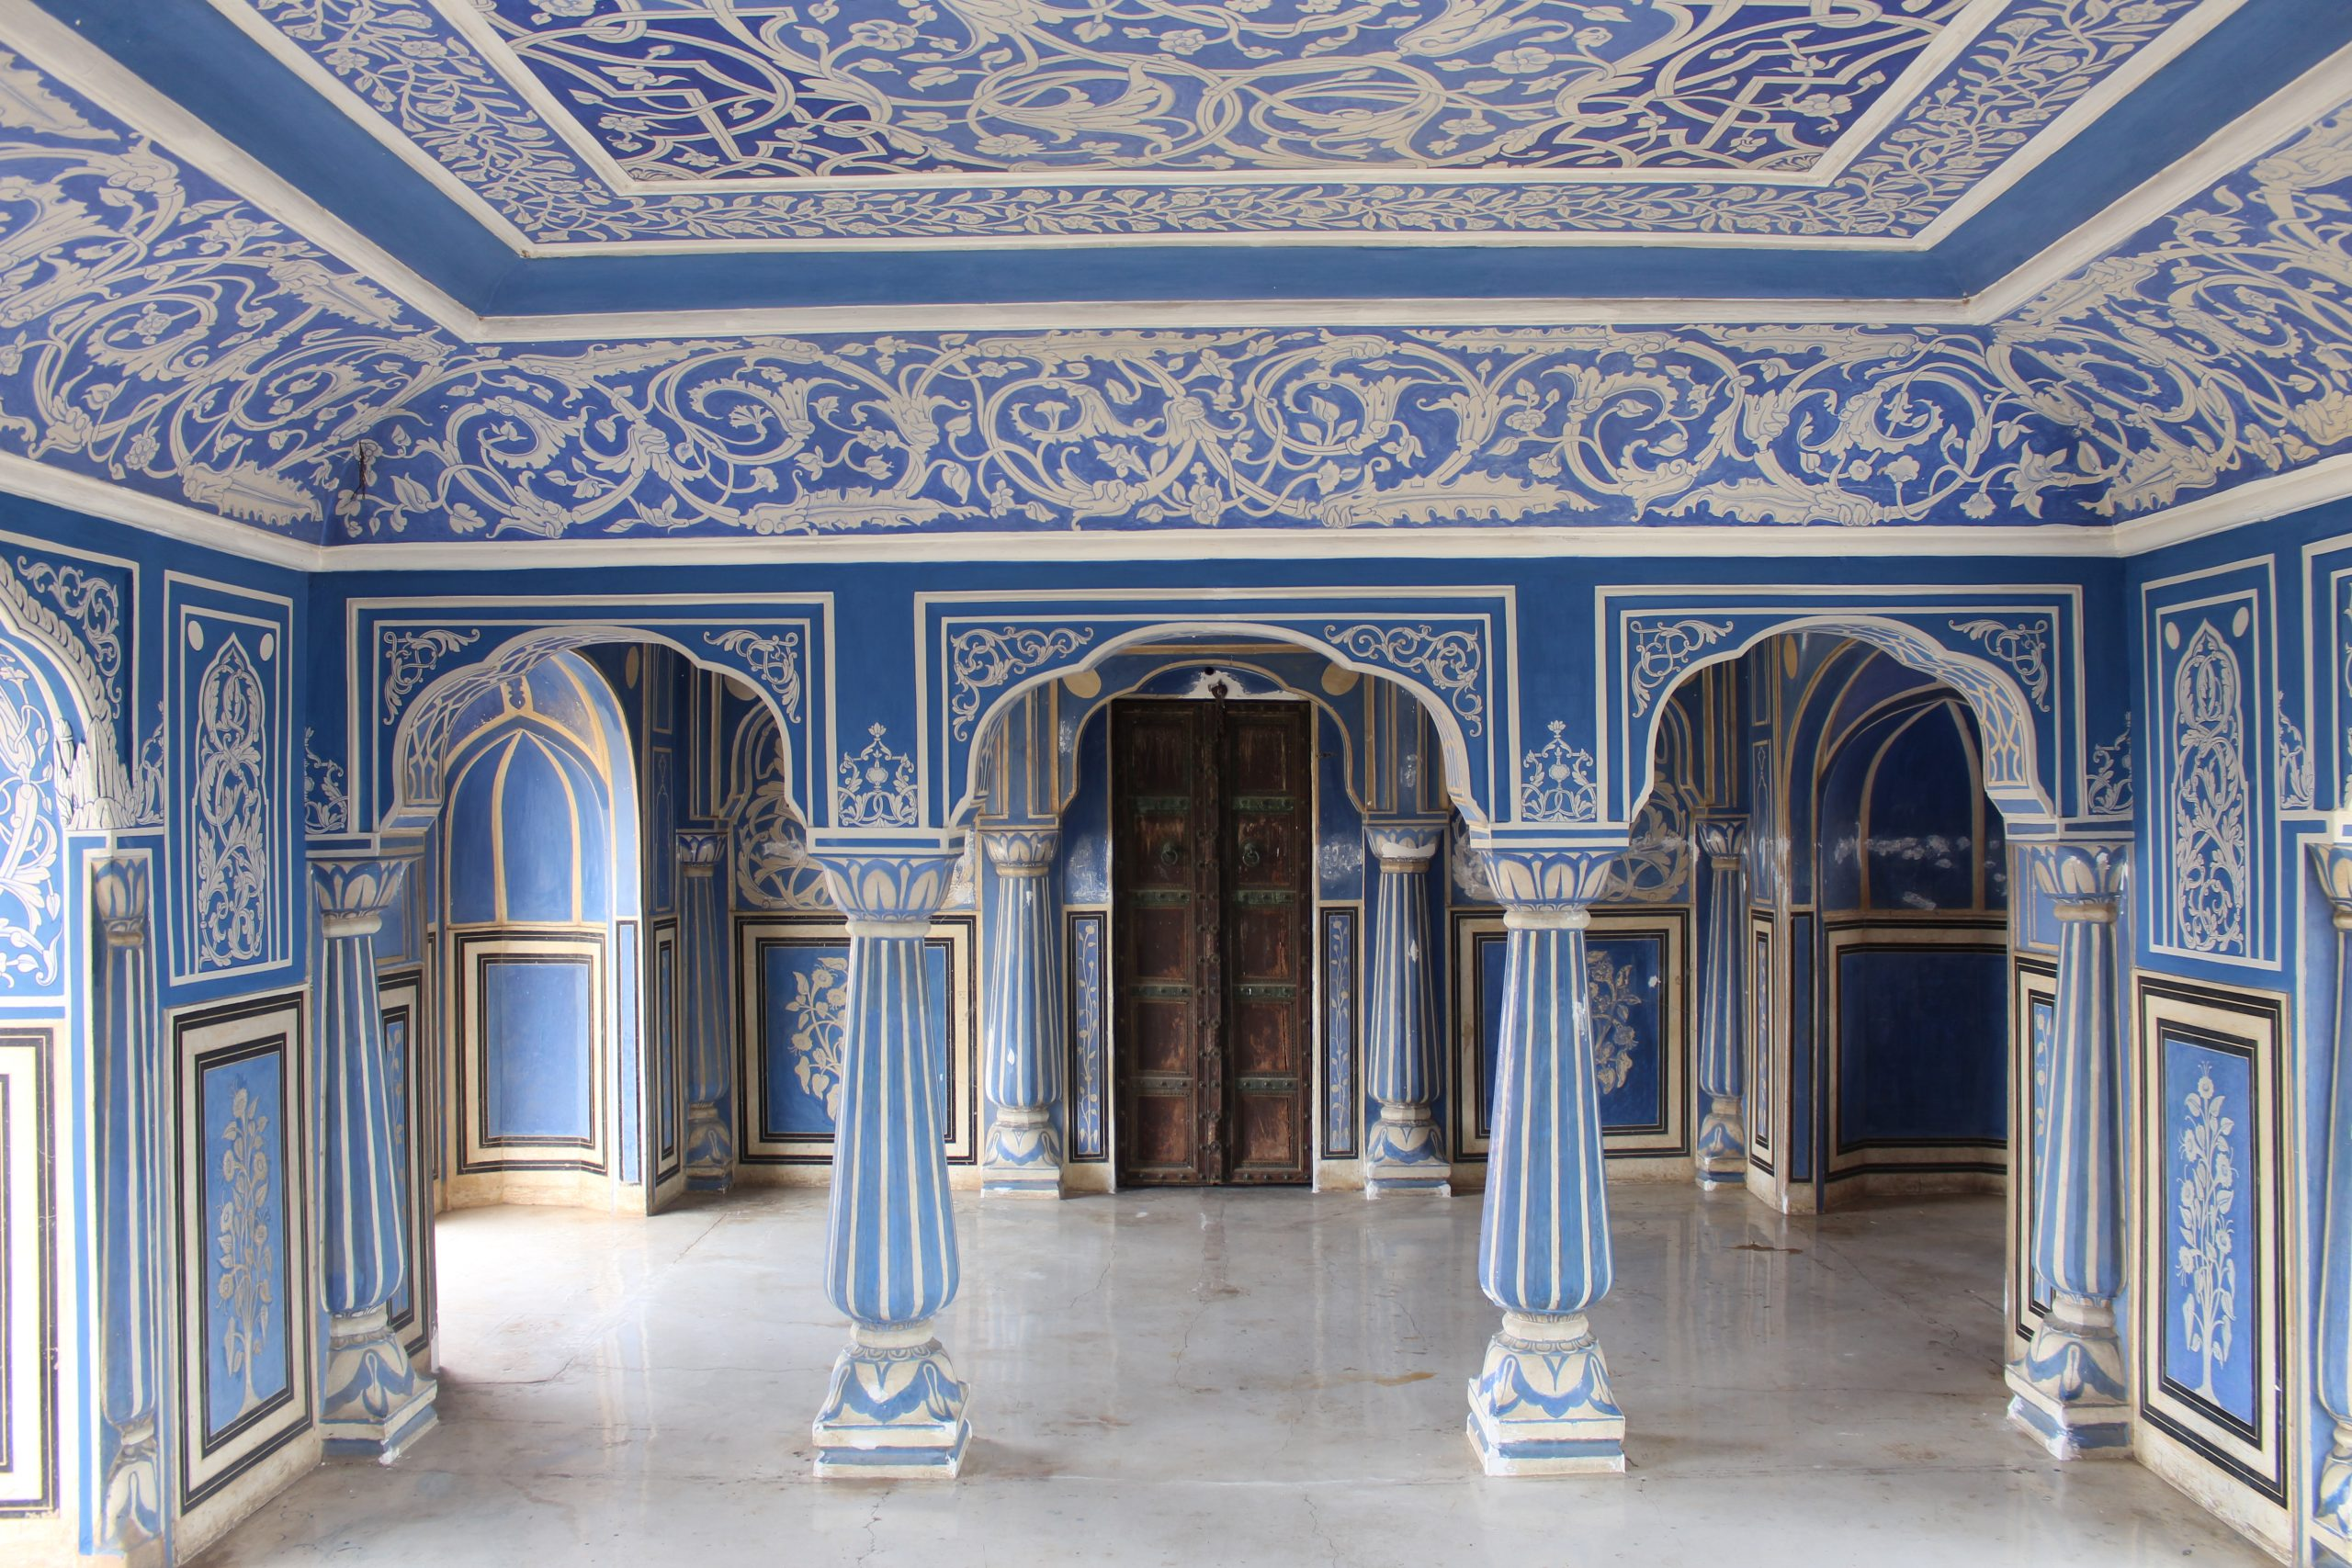 city_palace_sala_azul